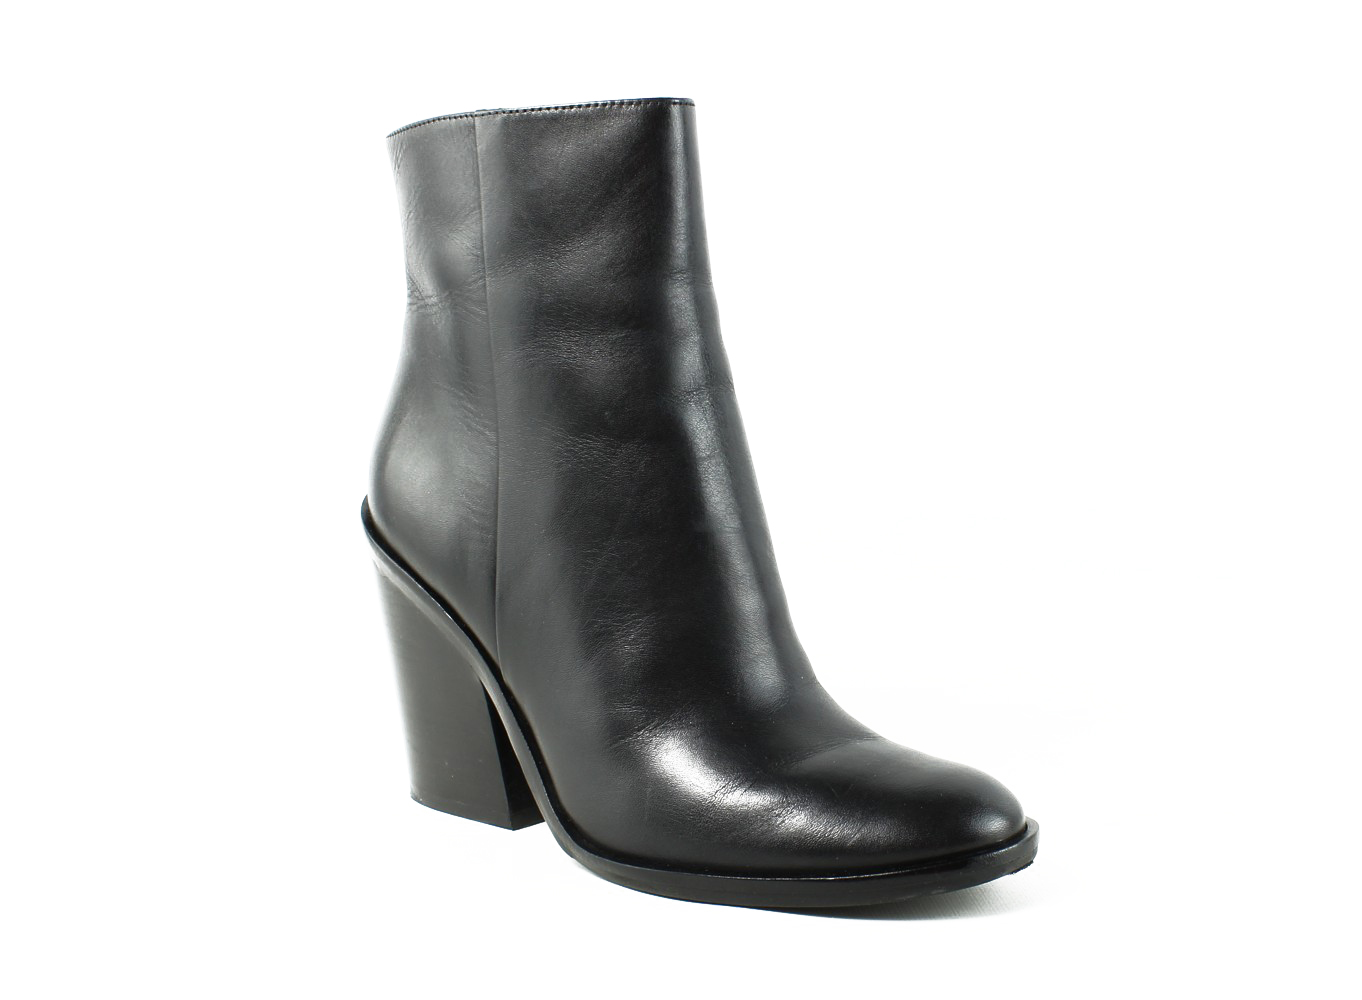 Marc Fisher Womens Black Fashion Boots Size 6.5 (310479)